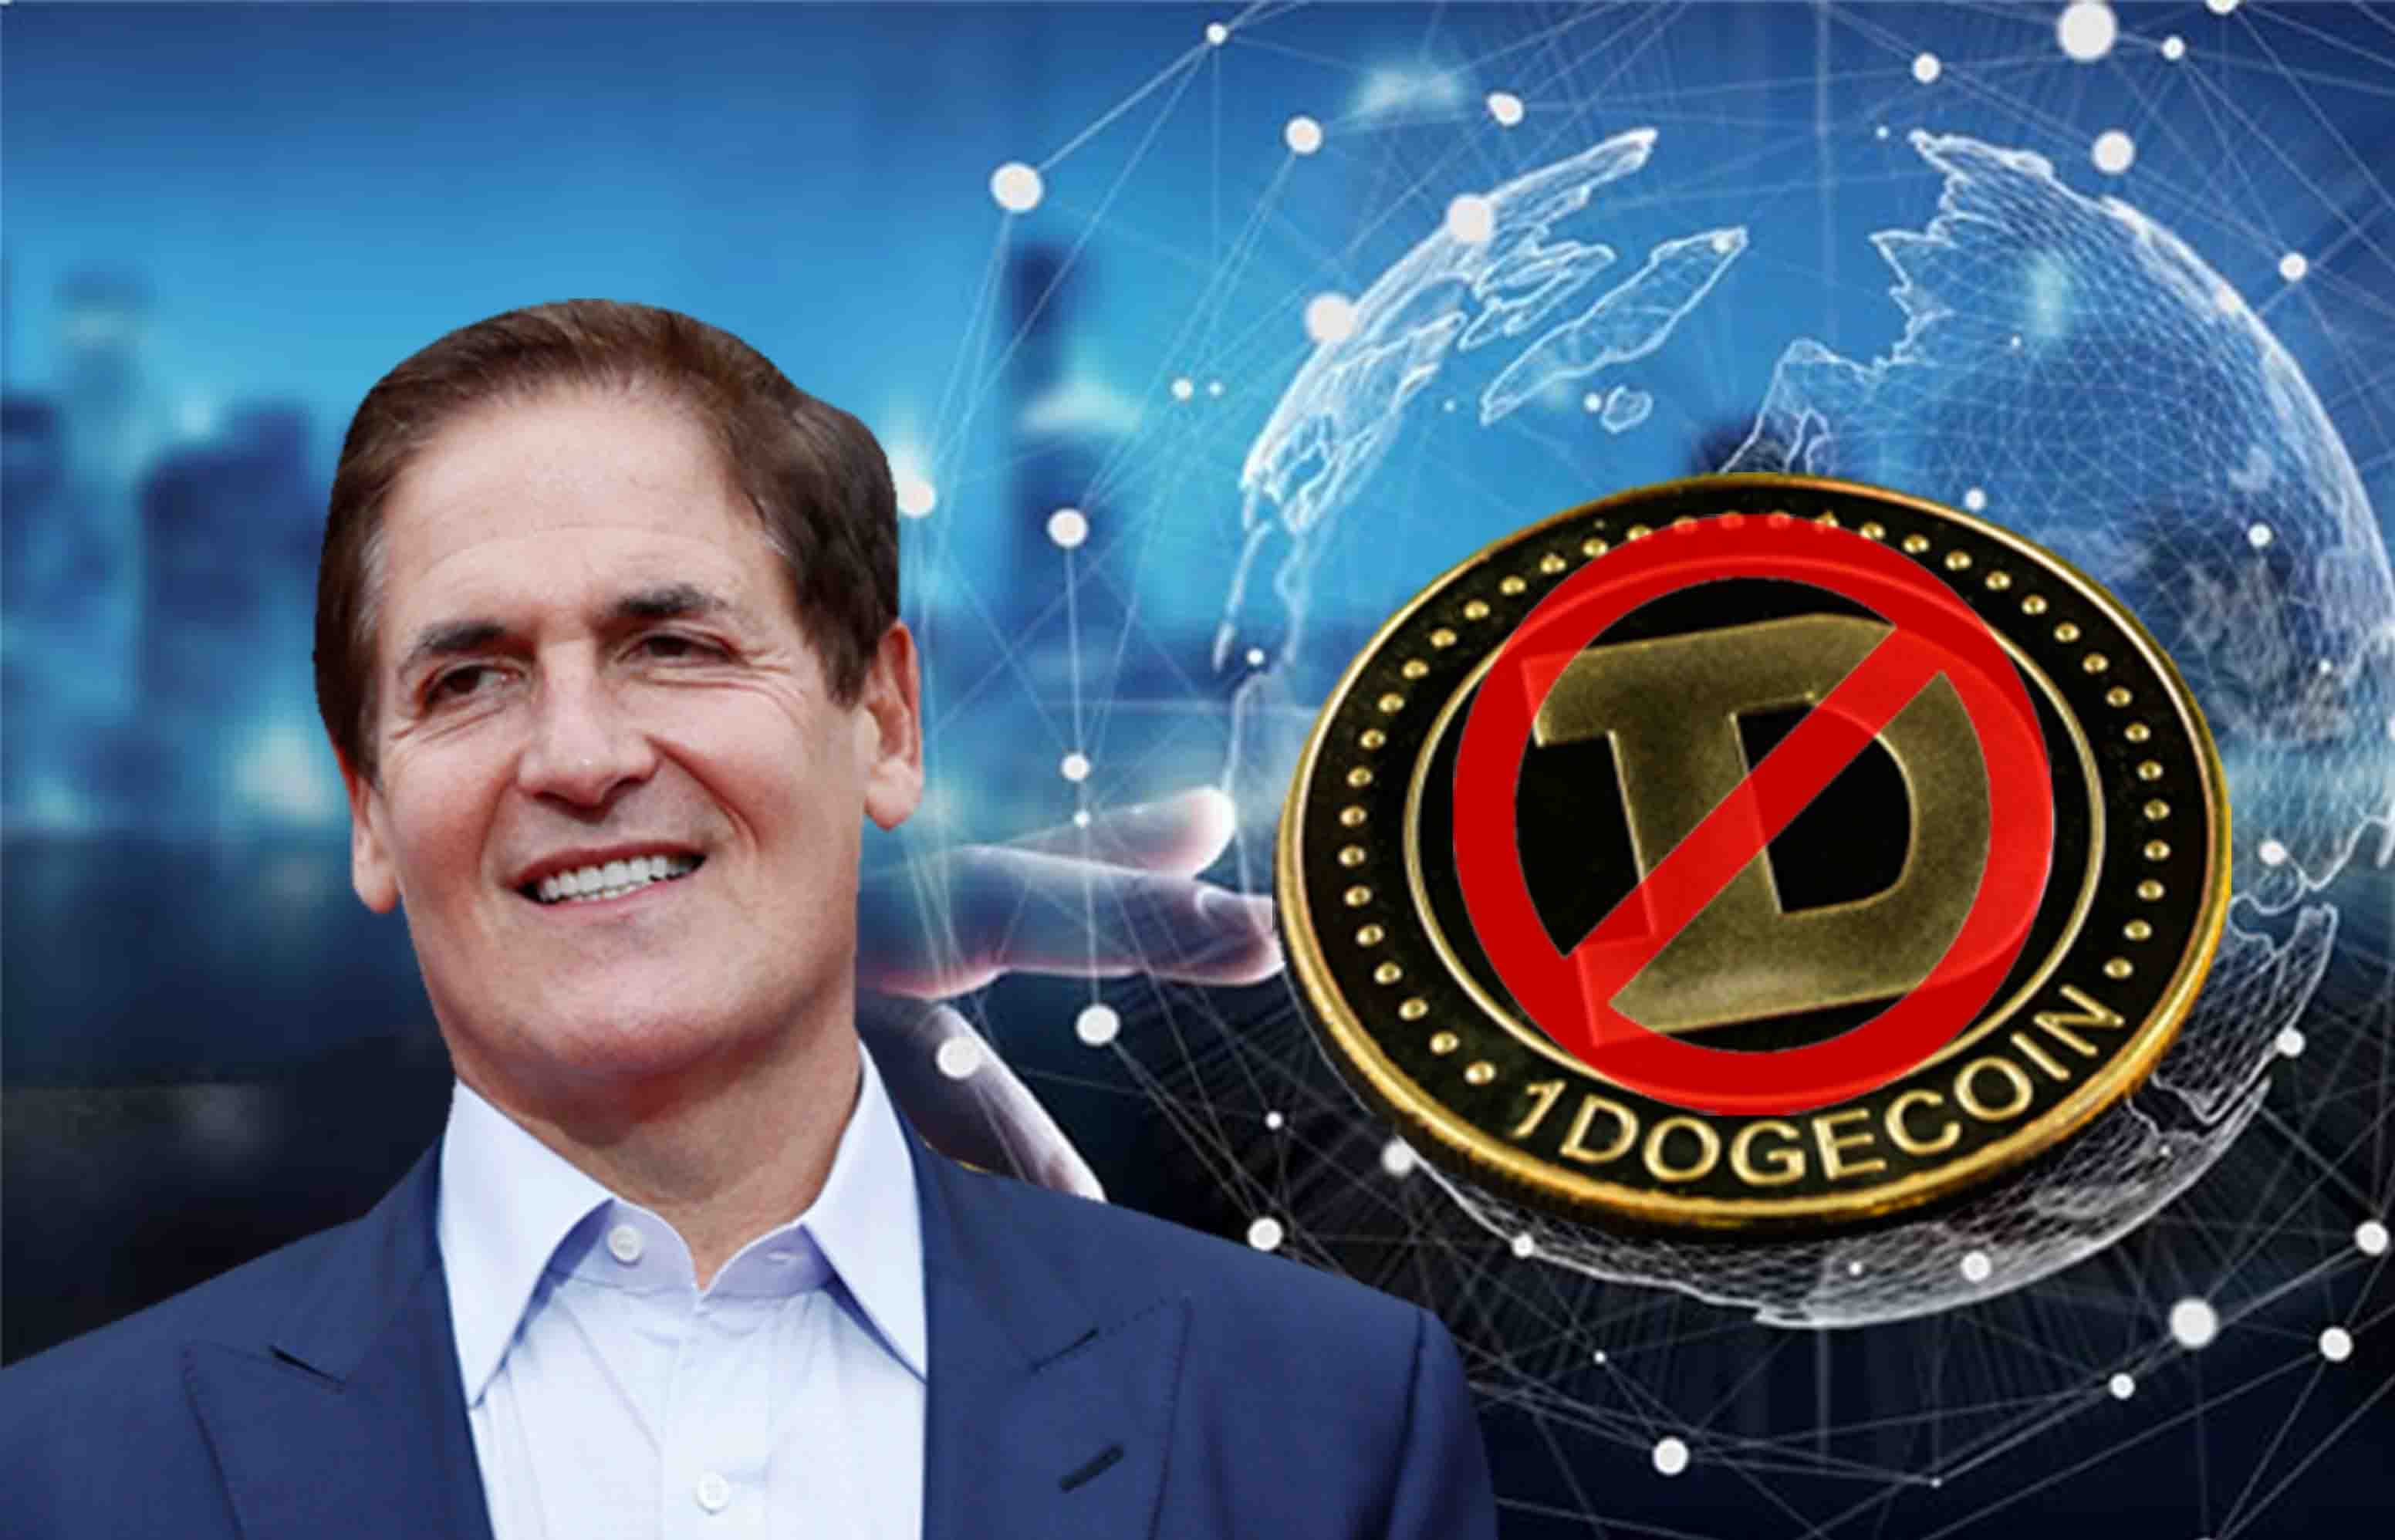 'We Will Never Sell 1 Single Doge Ever' Says Mark Cuban on Dallas Mavs